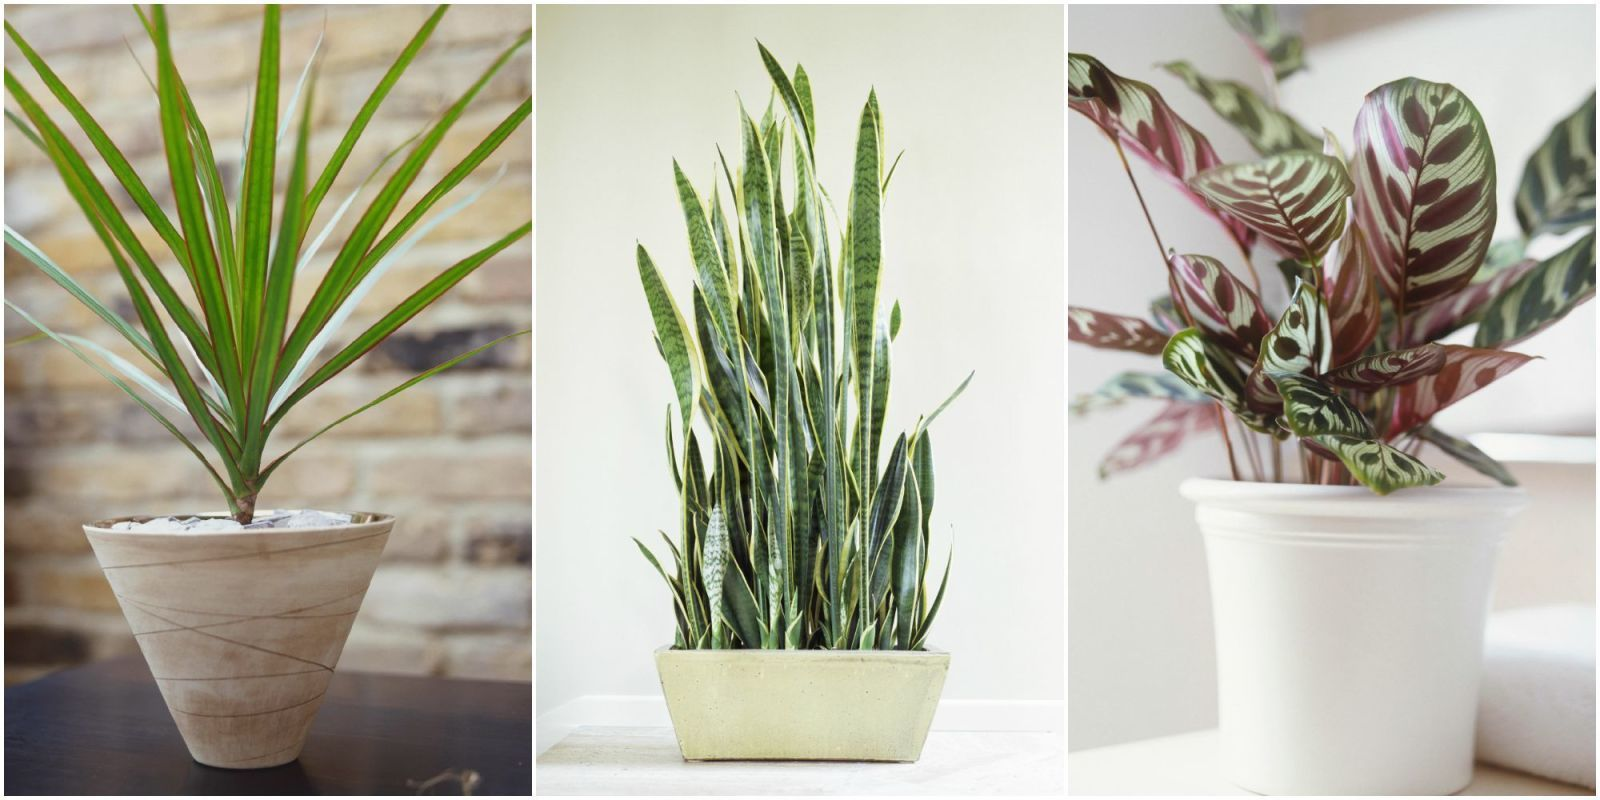 10 houseplants that can survive in even the darkest corner - Tall House Plants Low Light